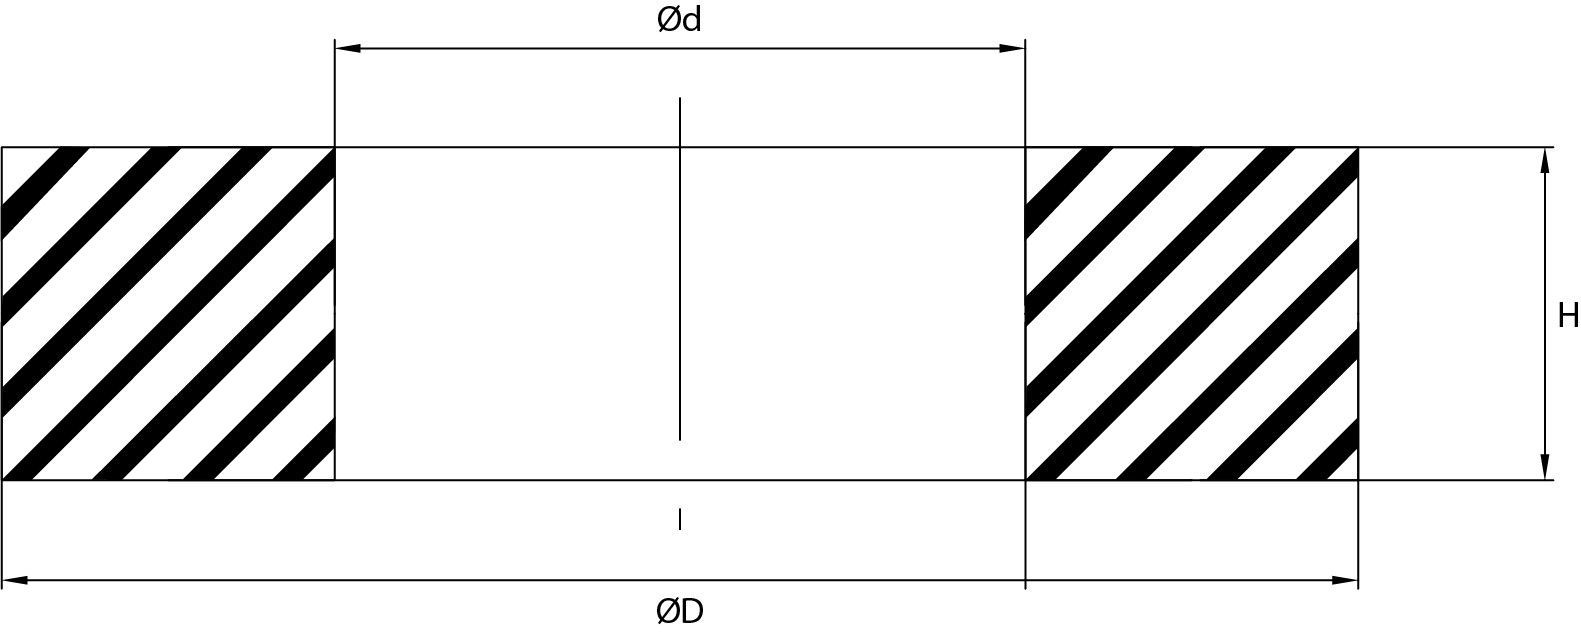 square-rings_1.png